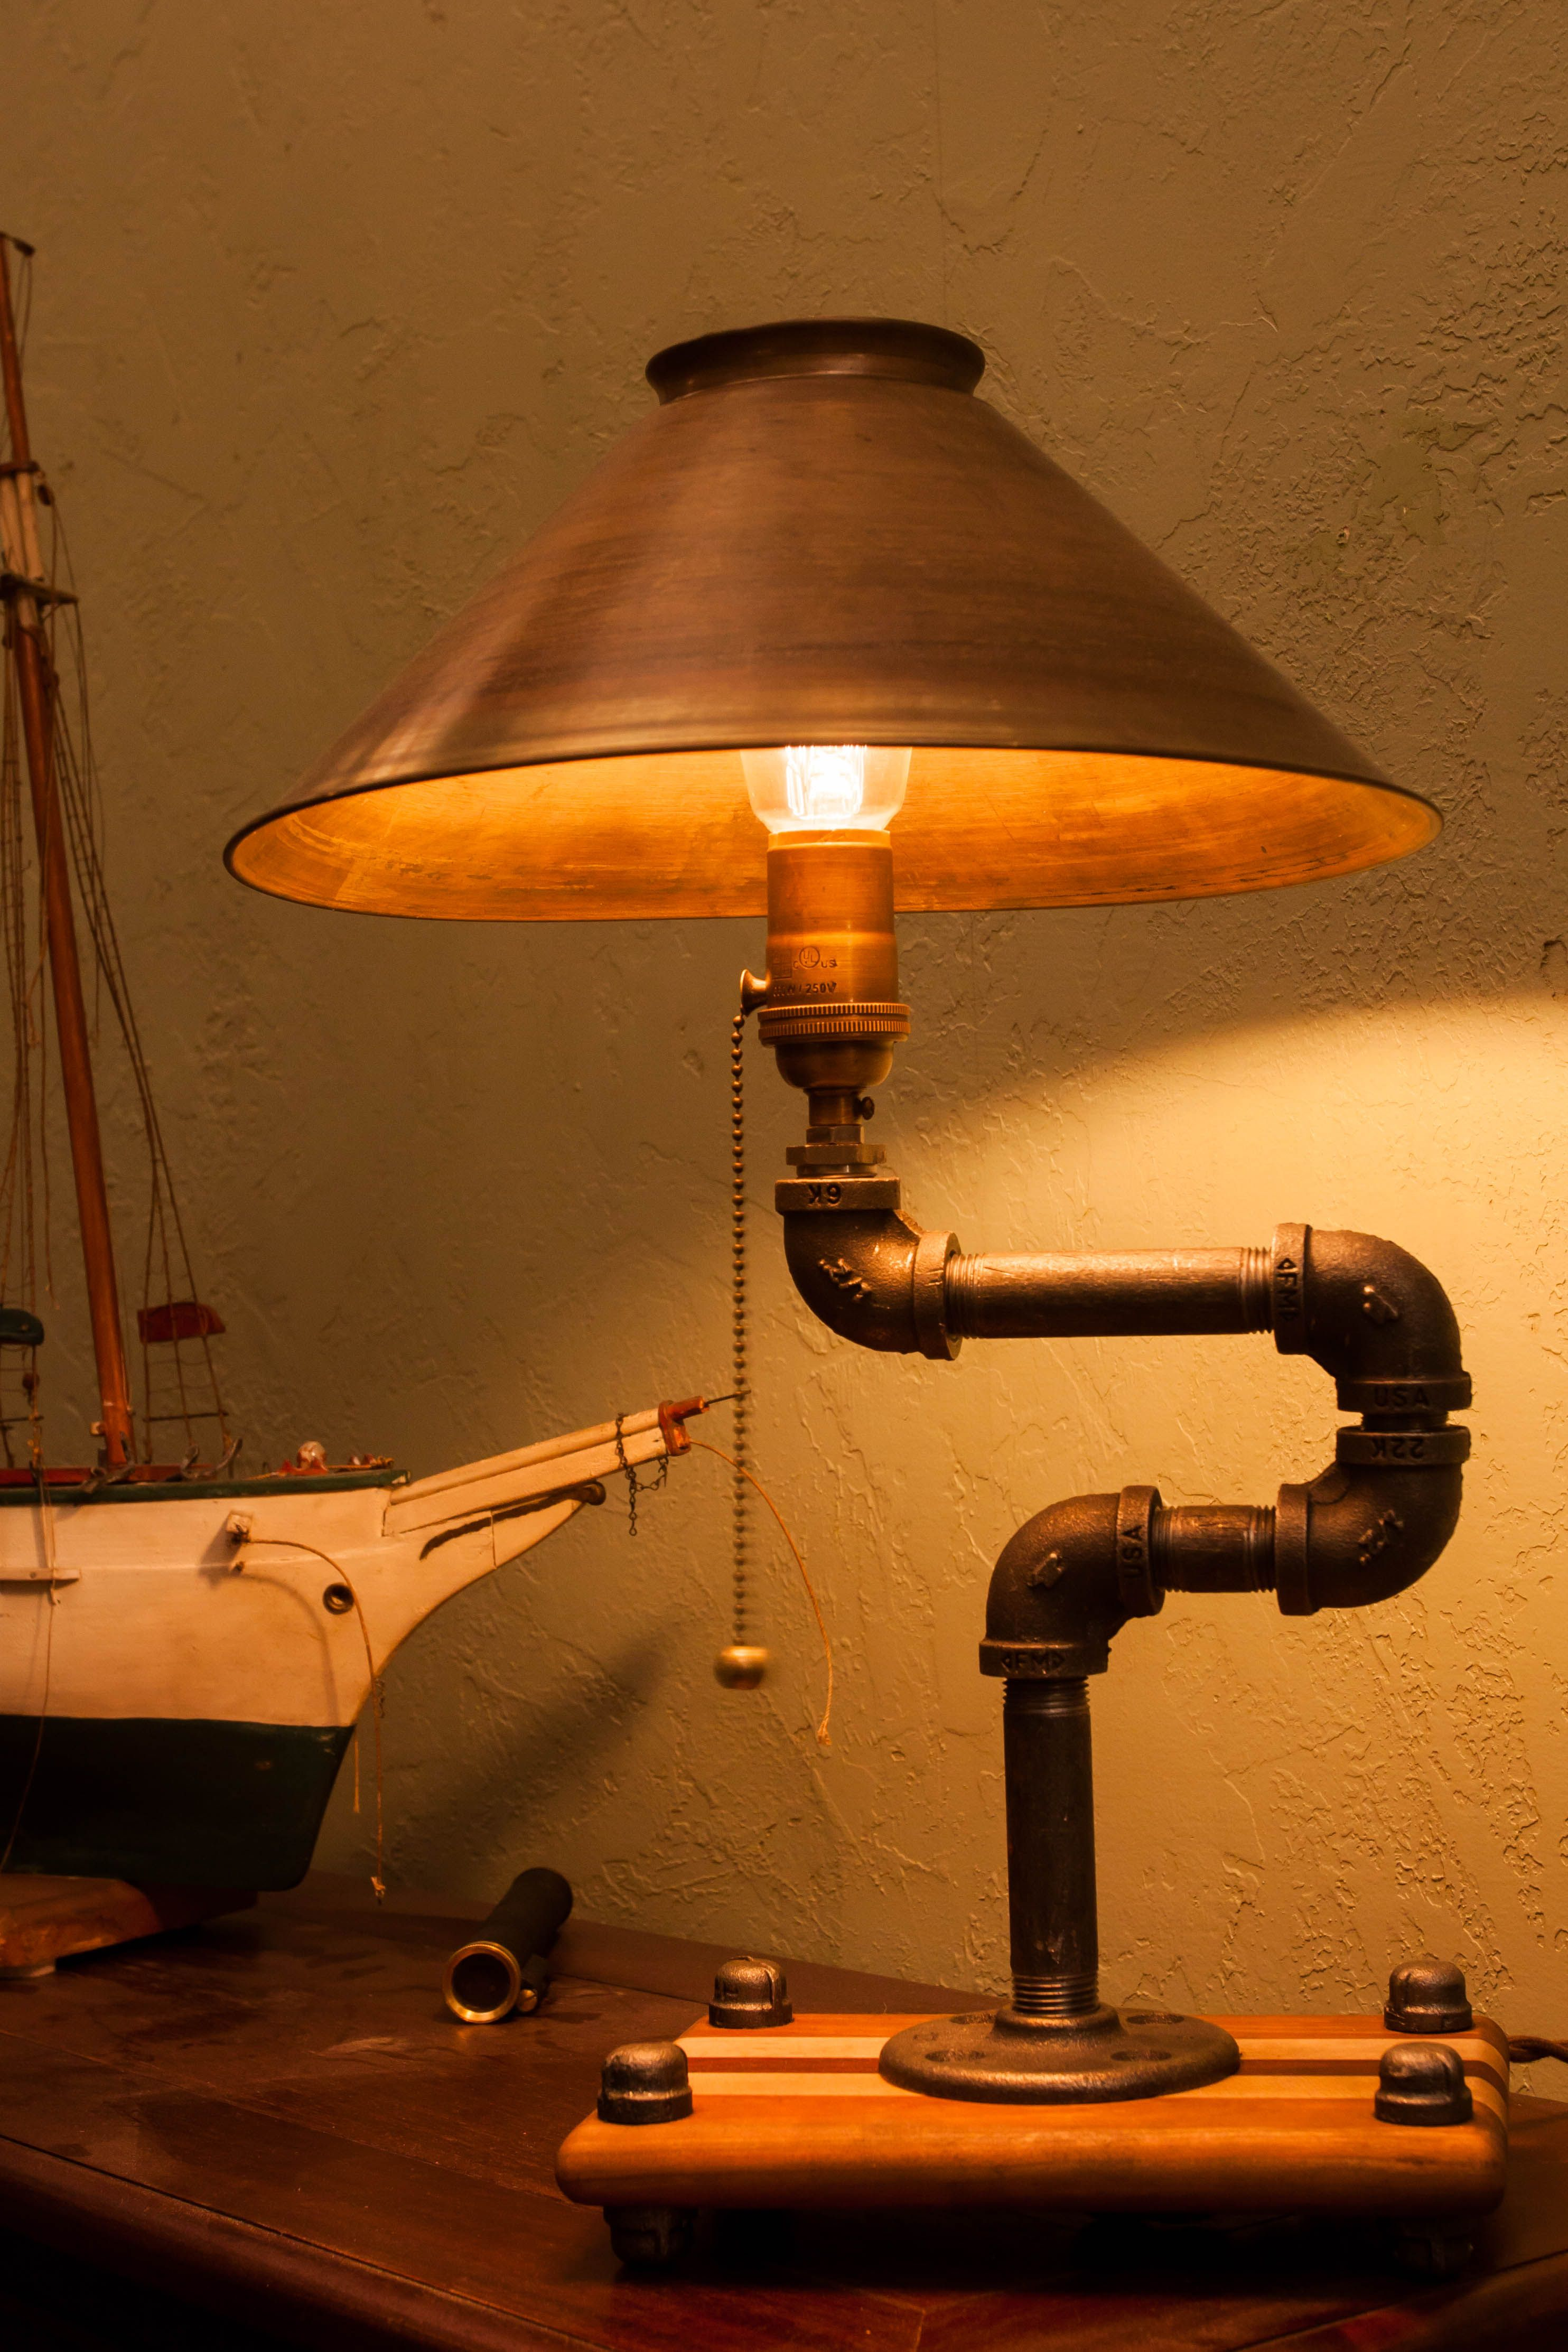 The Lounge Made With Usa Pipping And A Hardwood Base An Interesting And Yet Pleasant Lamp A Fine Add Wooden Lamps Design Steampunk Lighting Rustic Lighting